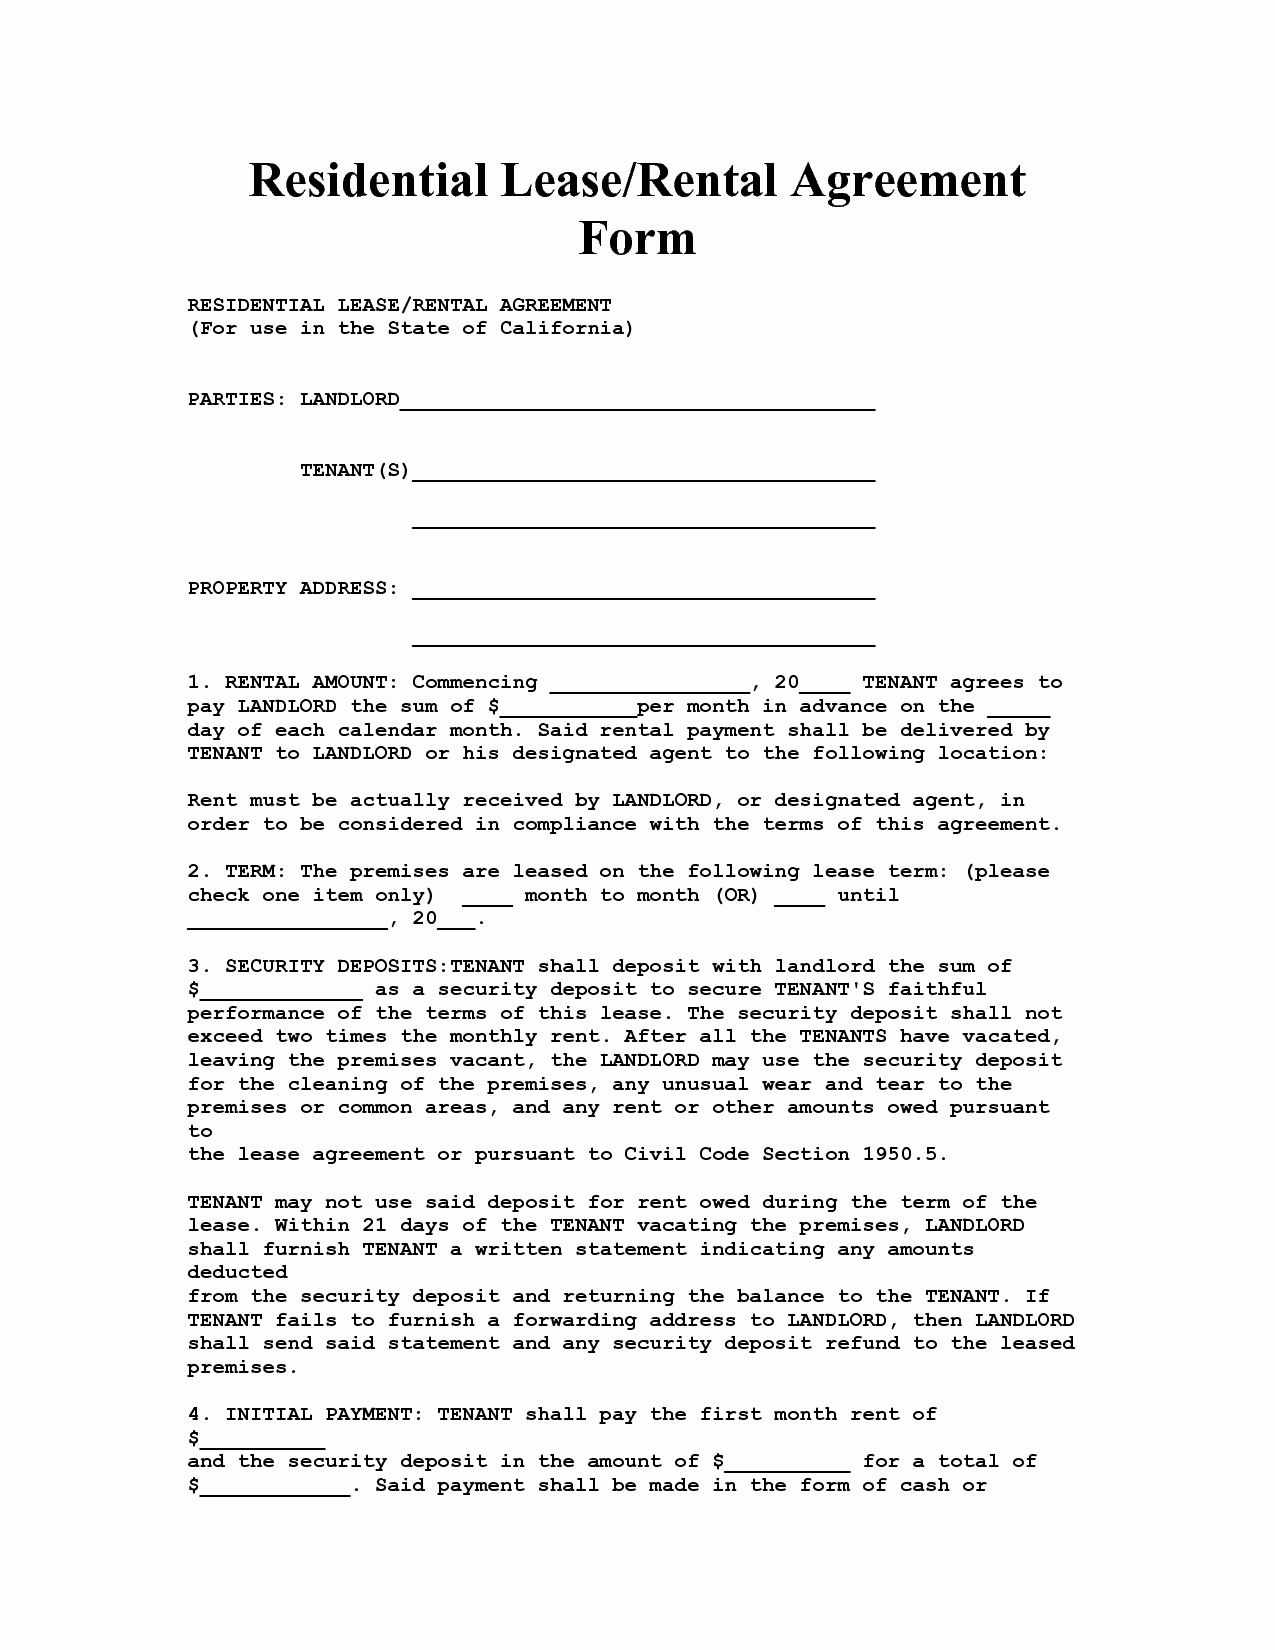 Residential Rental Agreement form Elegant California House Lease Agreement form